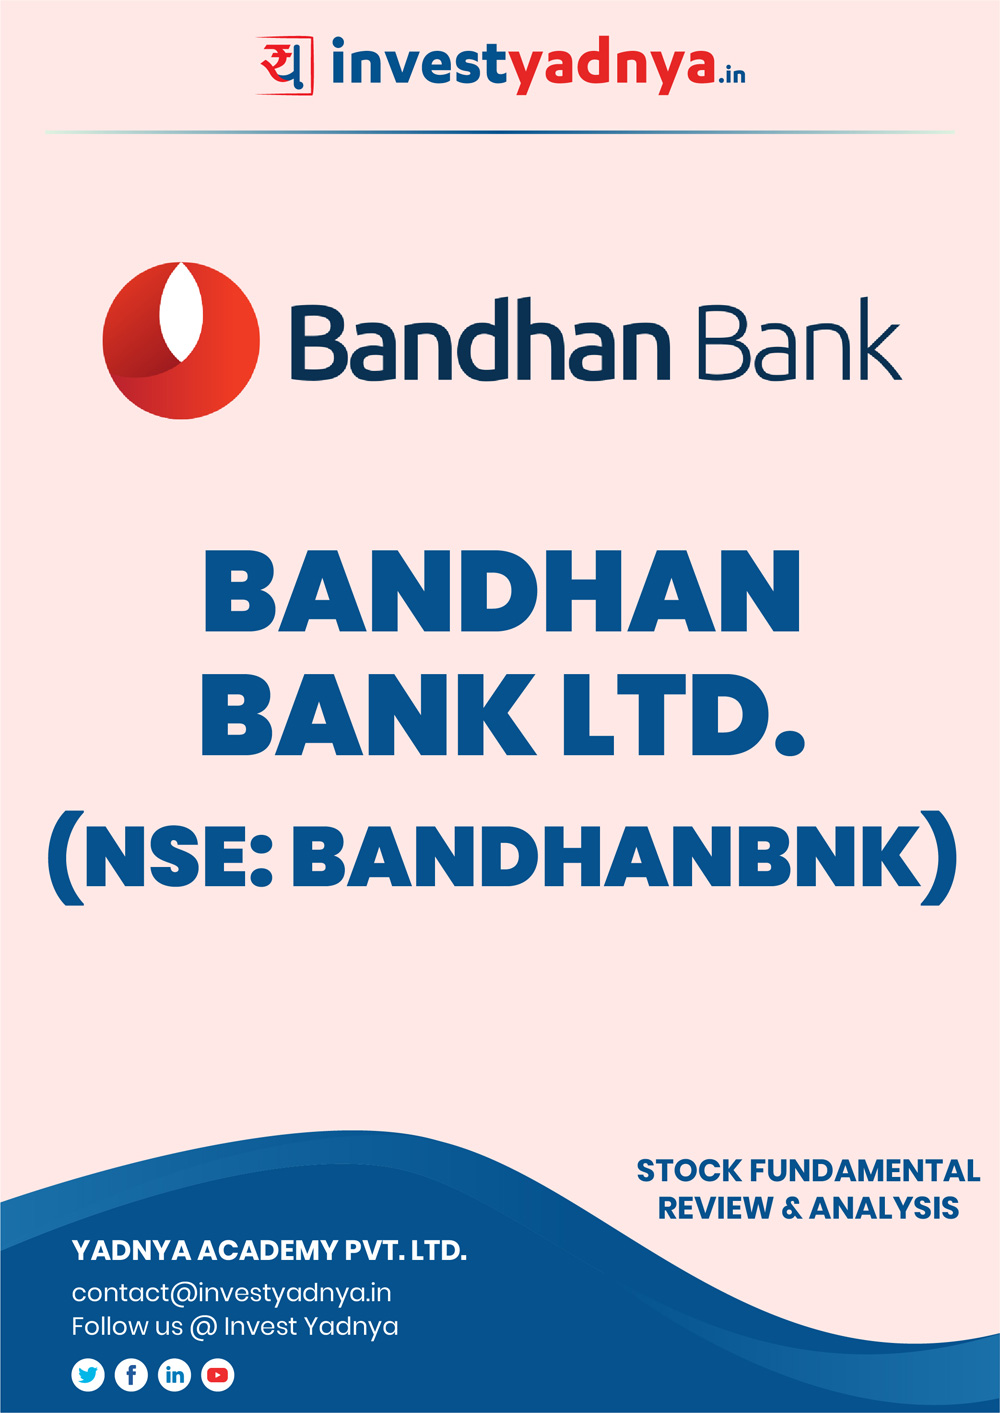 Bandhan Bank Ltd. Company/Stock Review & Analysis based on Q42018-19 and FY2018-19 data. The book contains the Fundamental Analysis of the company considering both Quantitative (Financial) and Qualitative Parameters.